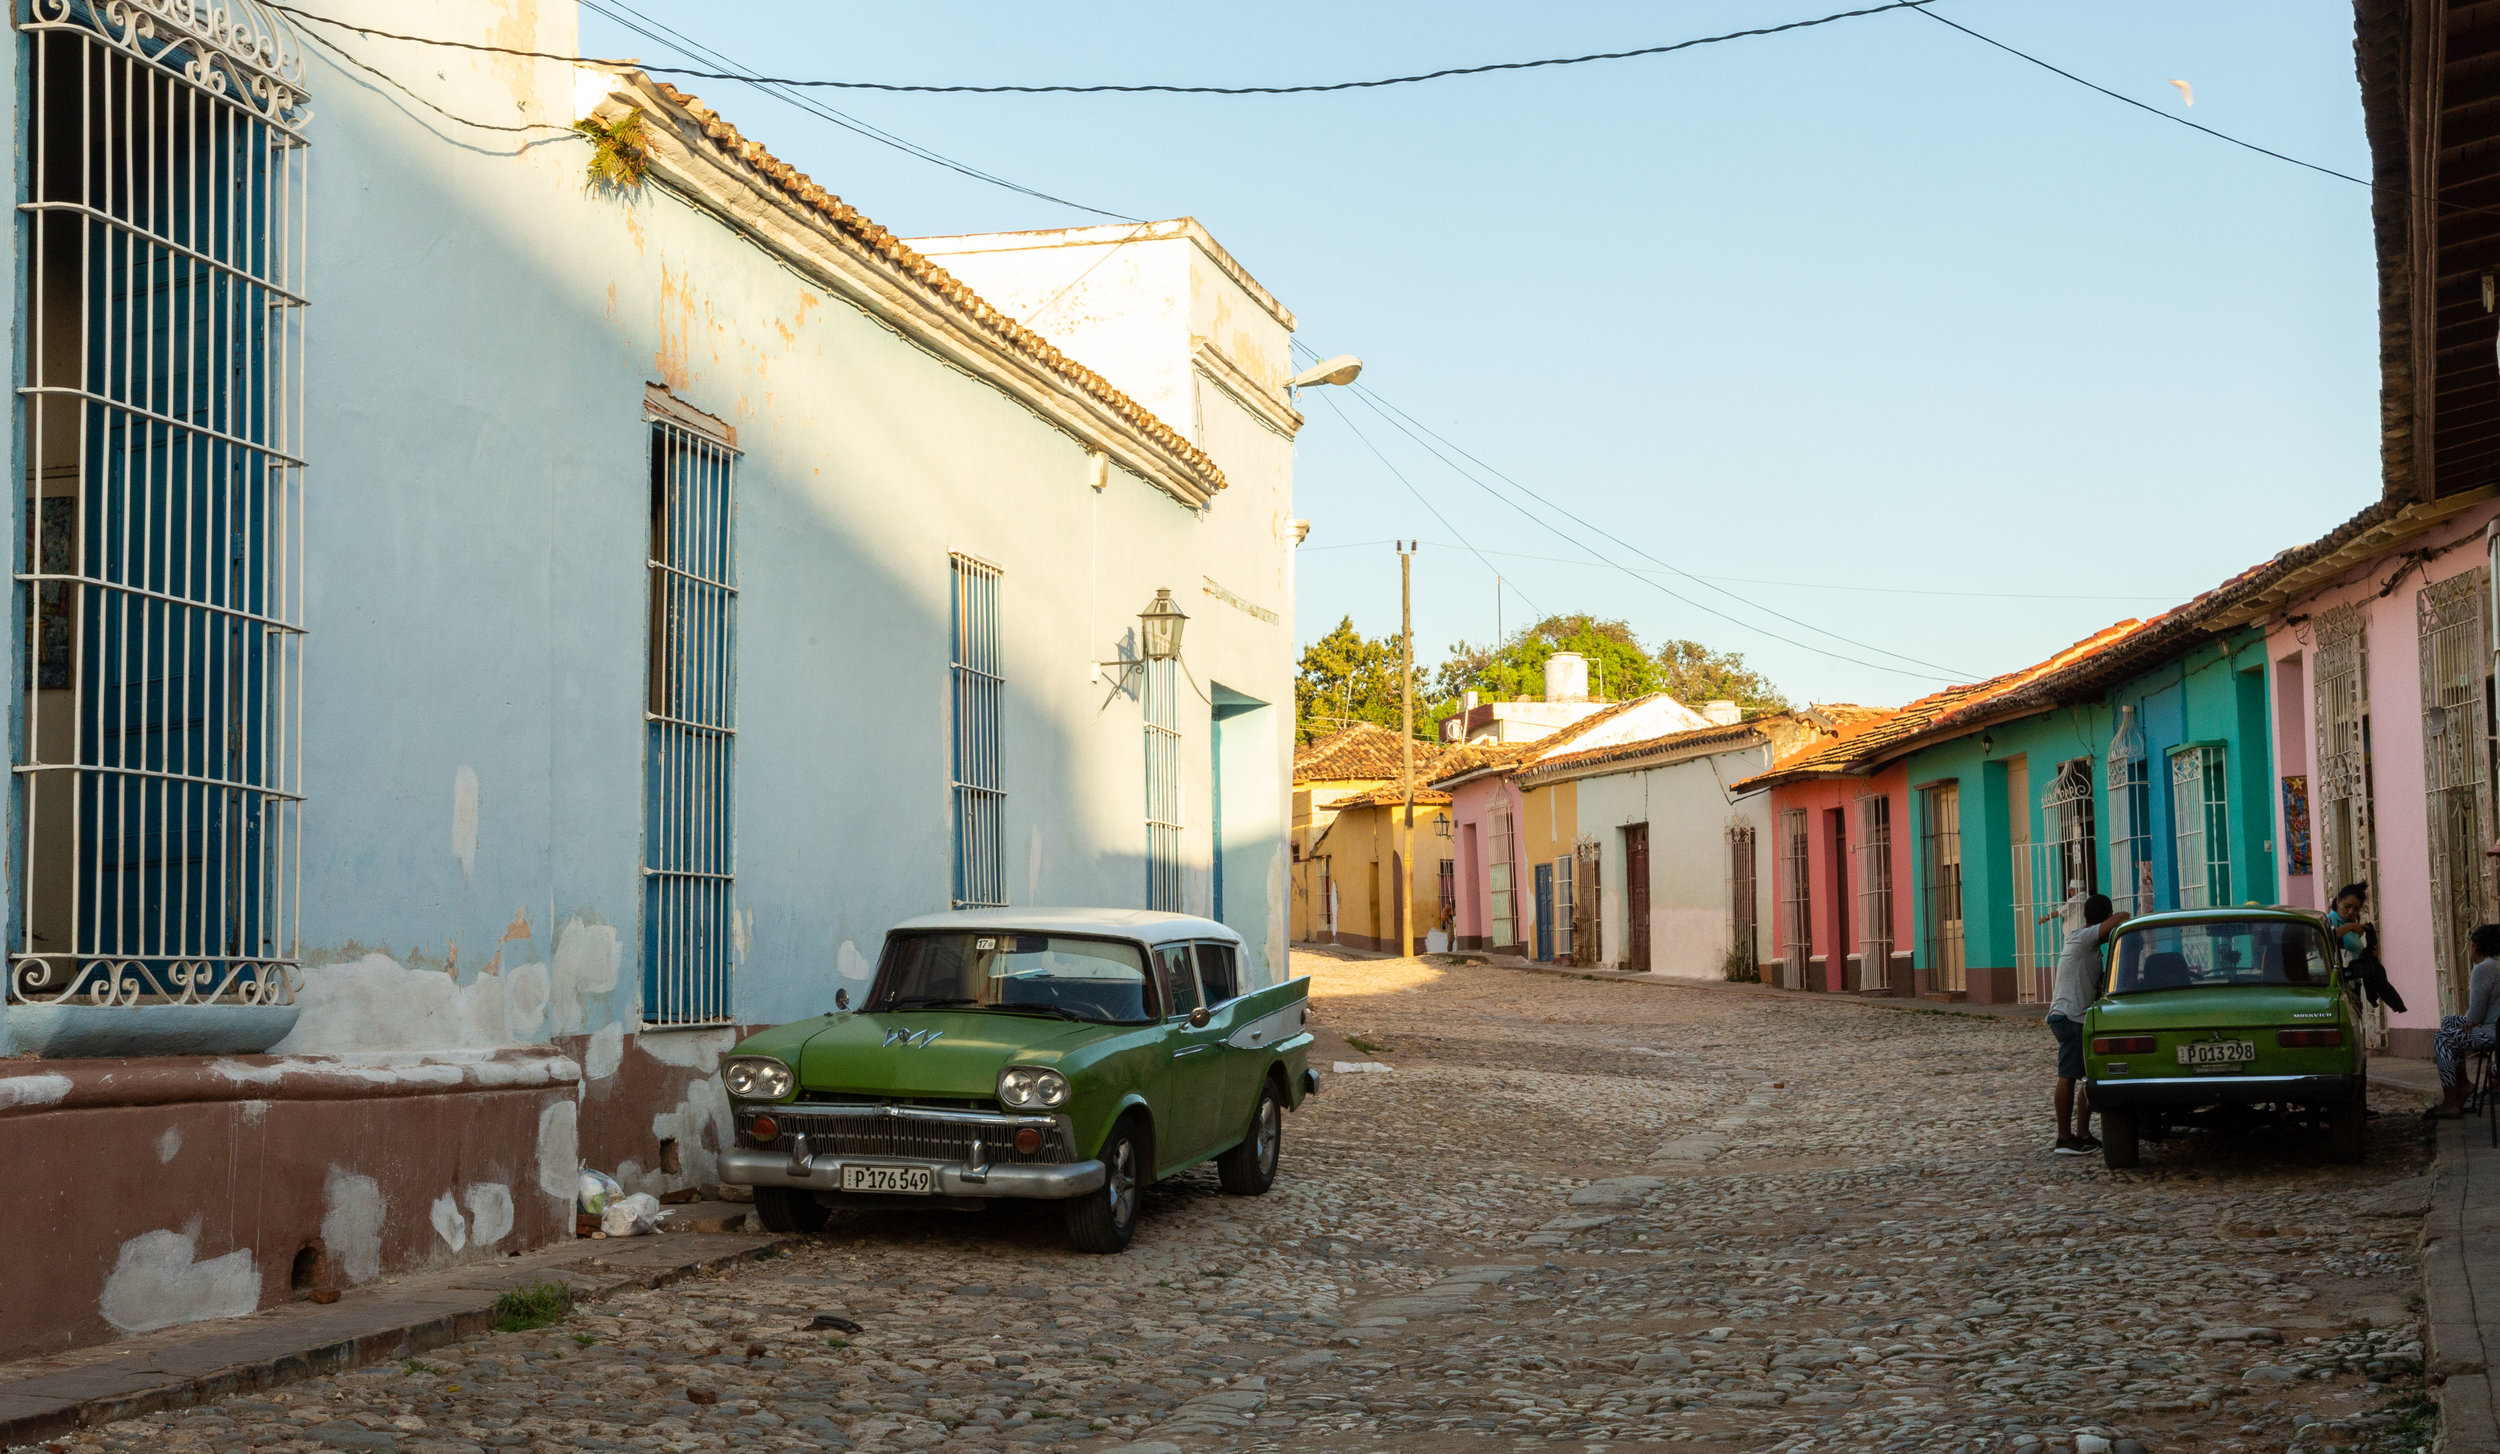 Cuba-Through-the-lens-276-3.jpg